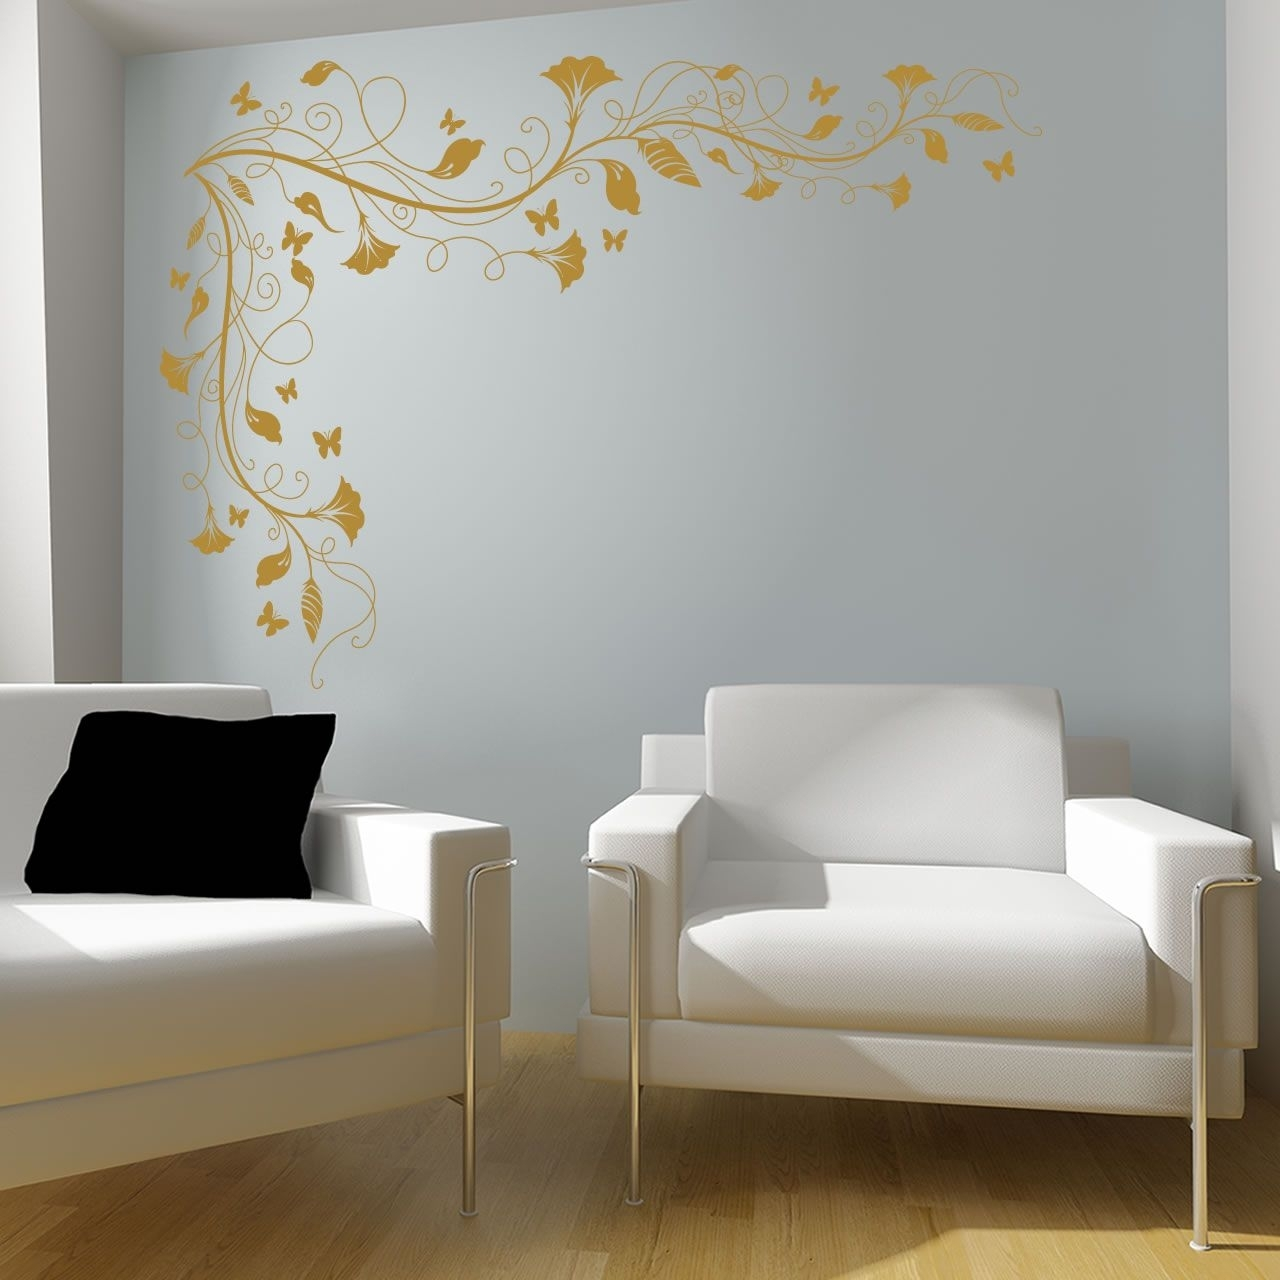 Spartacus Art - Wall Stickers / Decals / Transfers - Vines And within Corner Wall Art (Image 19 of 20)